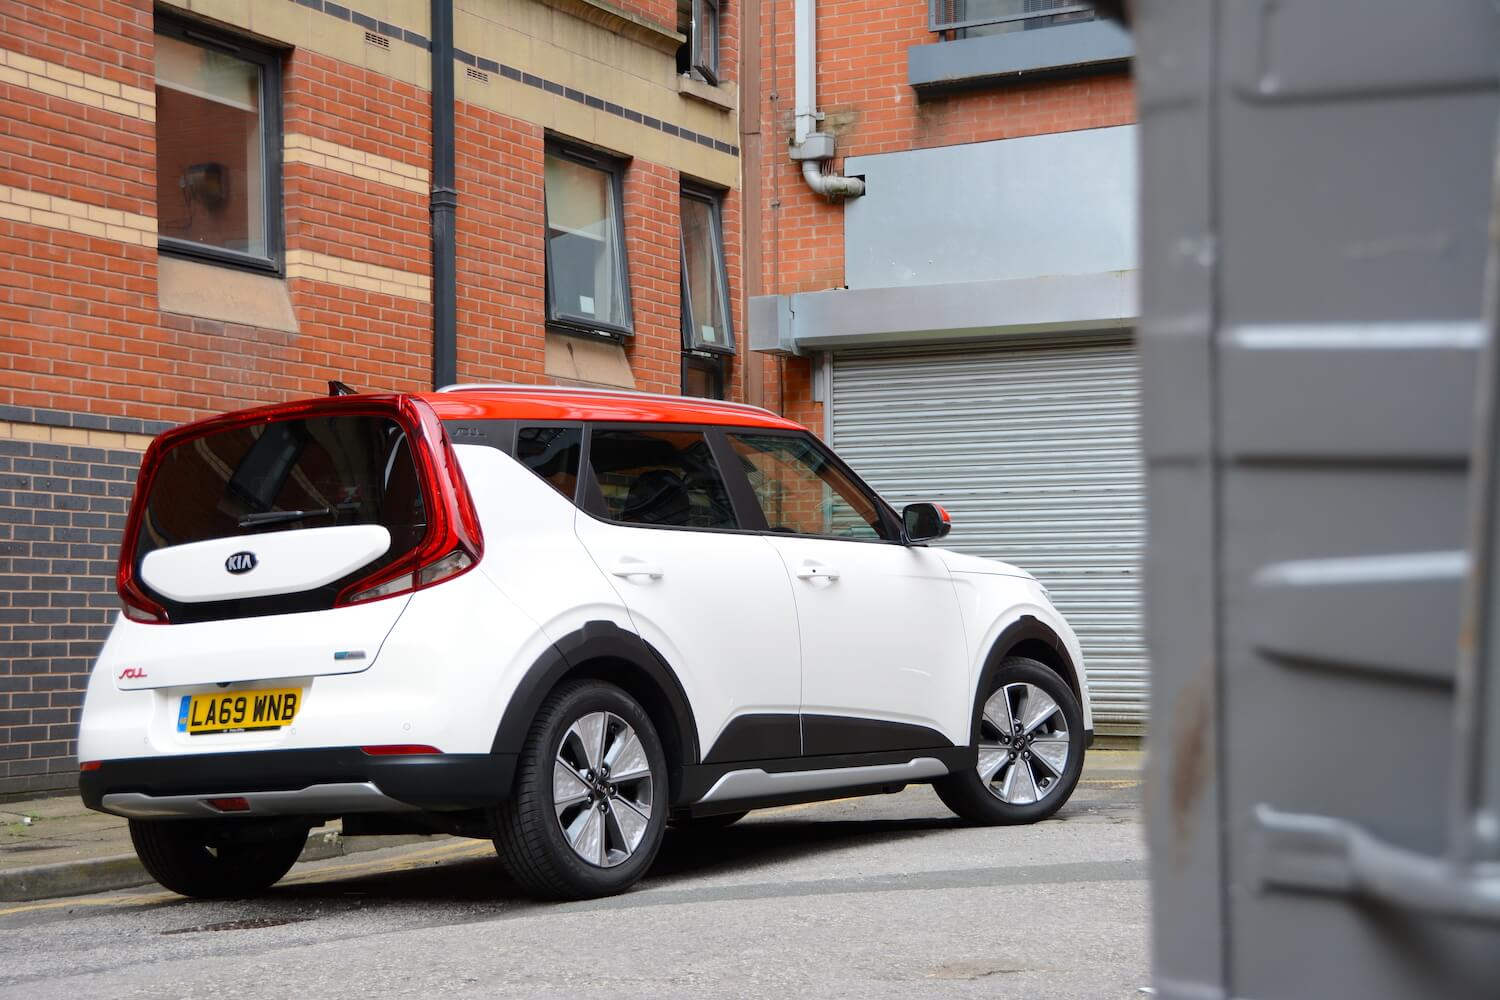 kia soul ev 2020 - living with review - greencarguide.co.uk